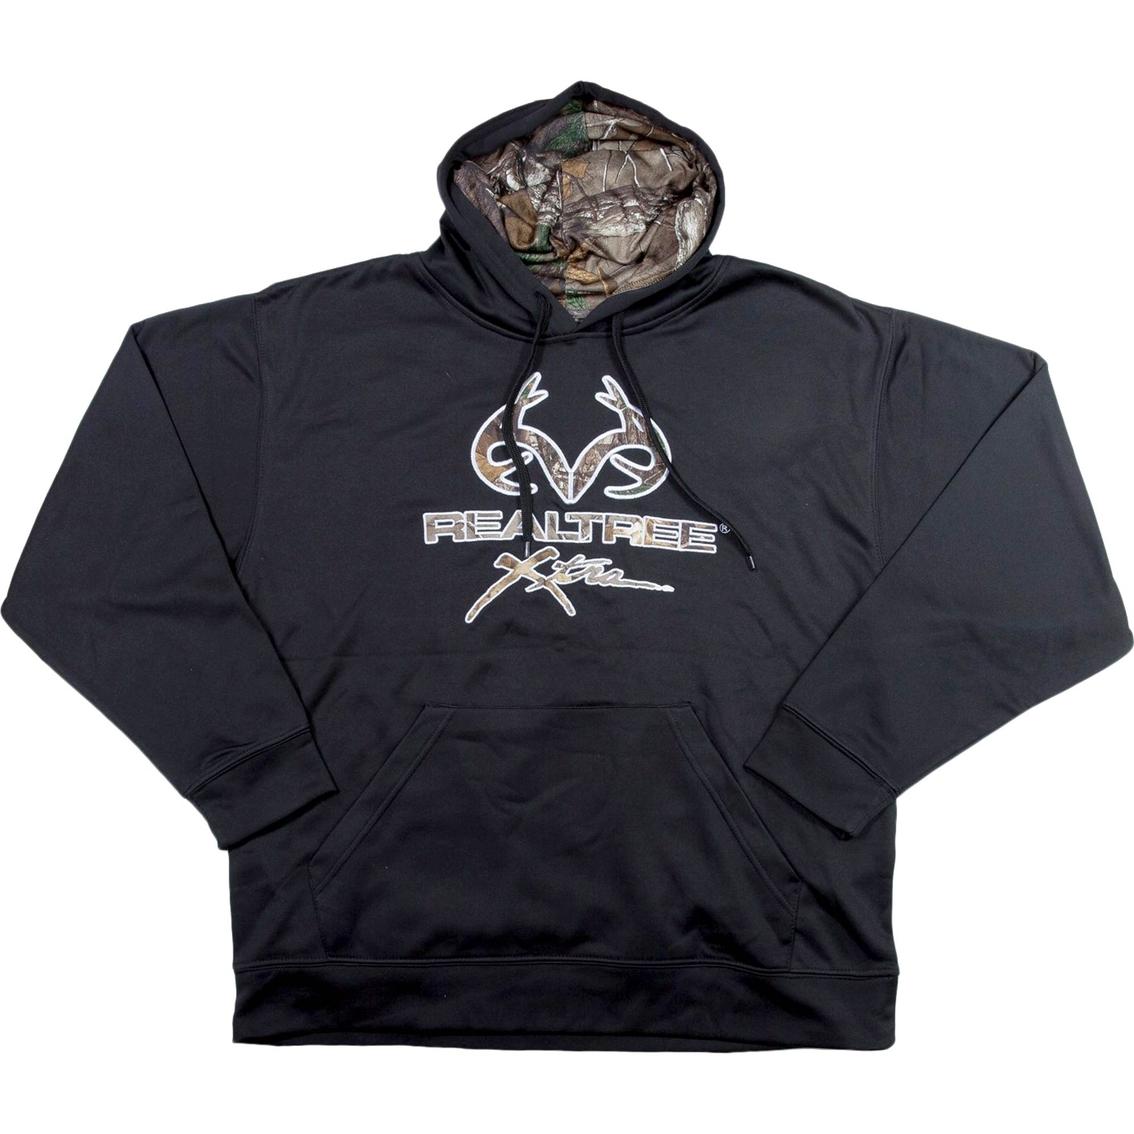 a43d9d51d Realtree Graphic Hoodie | Hoodies & Jackets | Apparel | Shop The ...